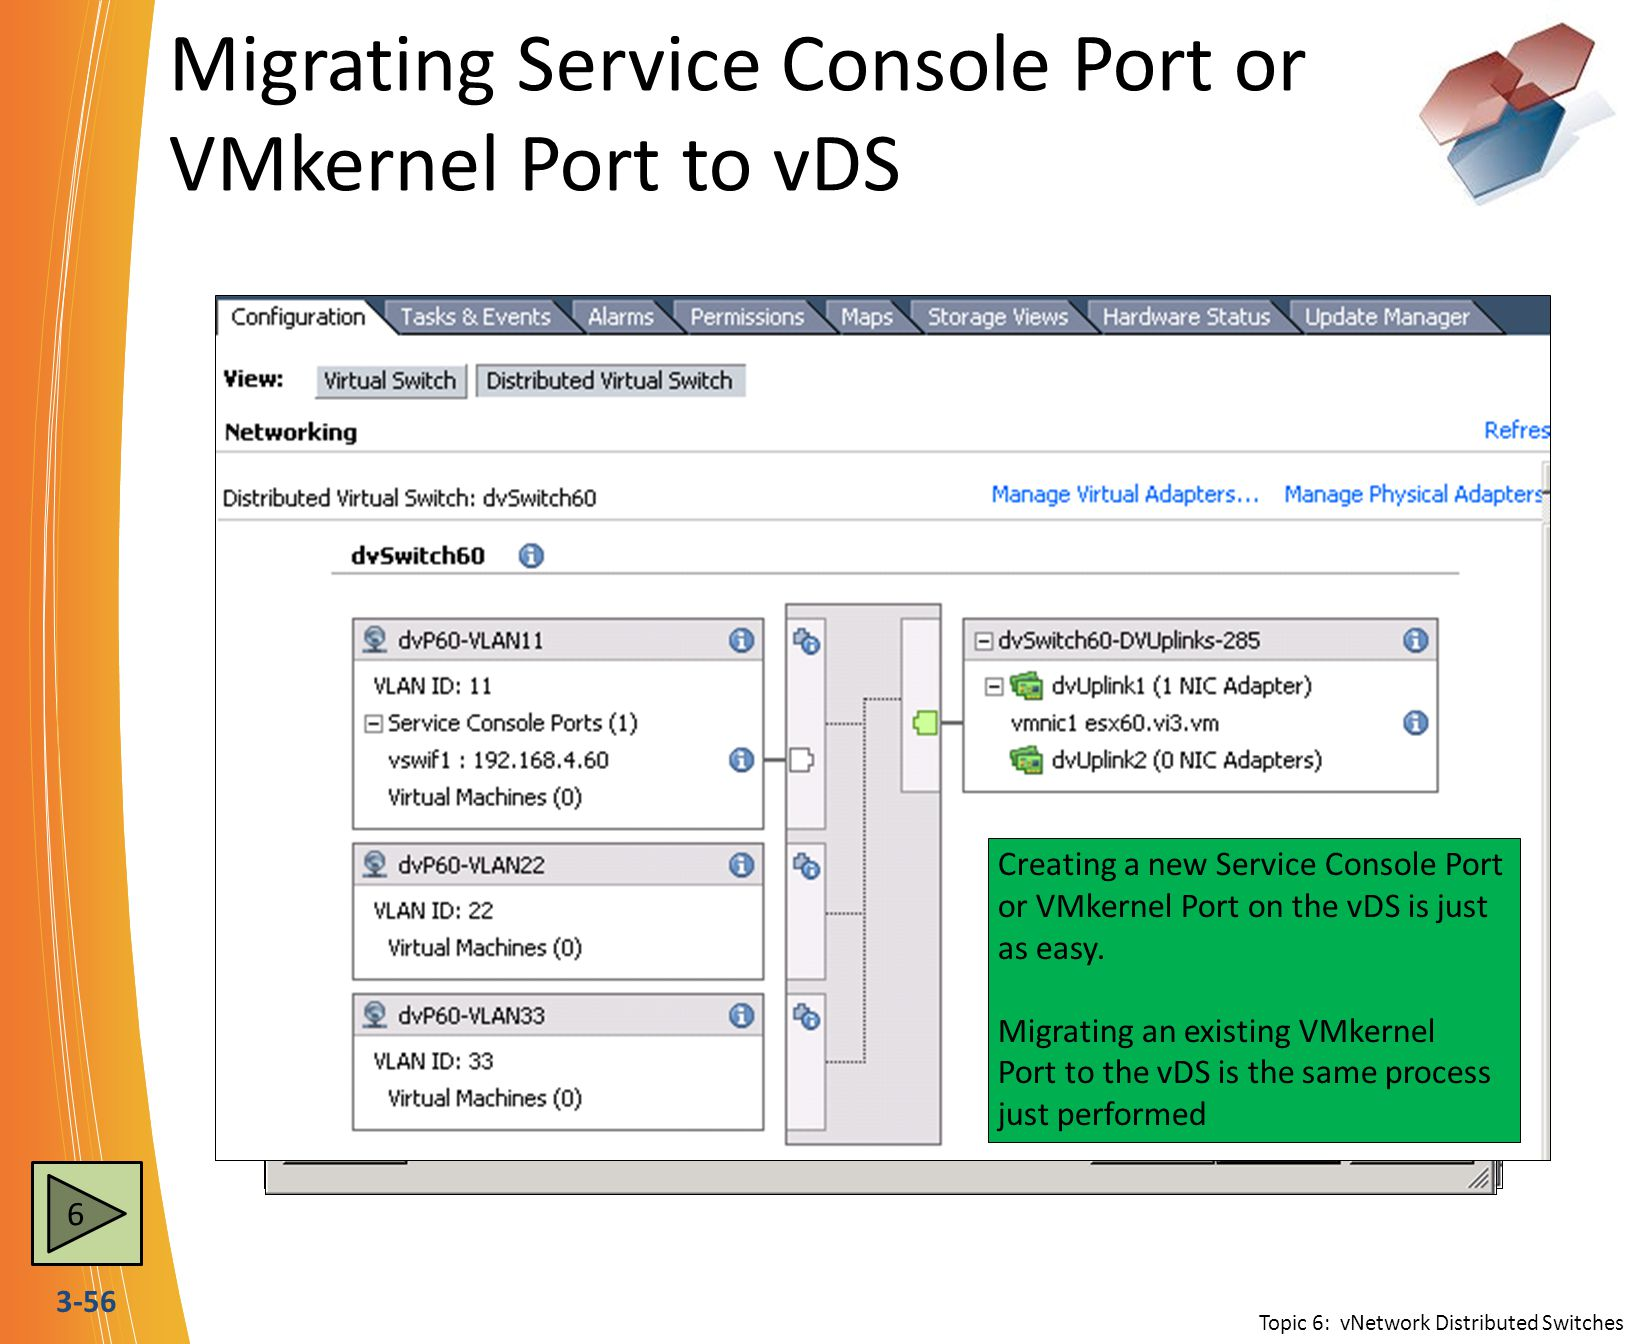 3-56 Migrating Service Console Port or VMkernel Port to vDS 6 Topic 6: vNetwork Distributed Switches New Virtual Adapter allows the creation of a new